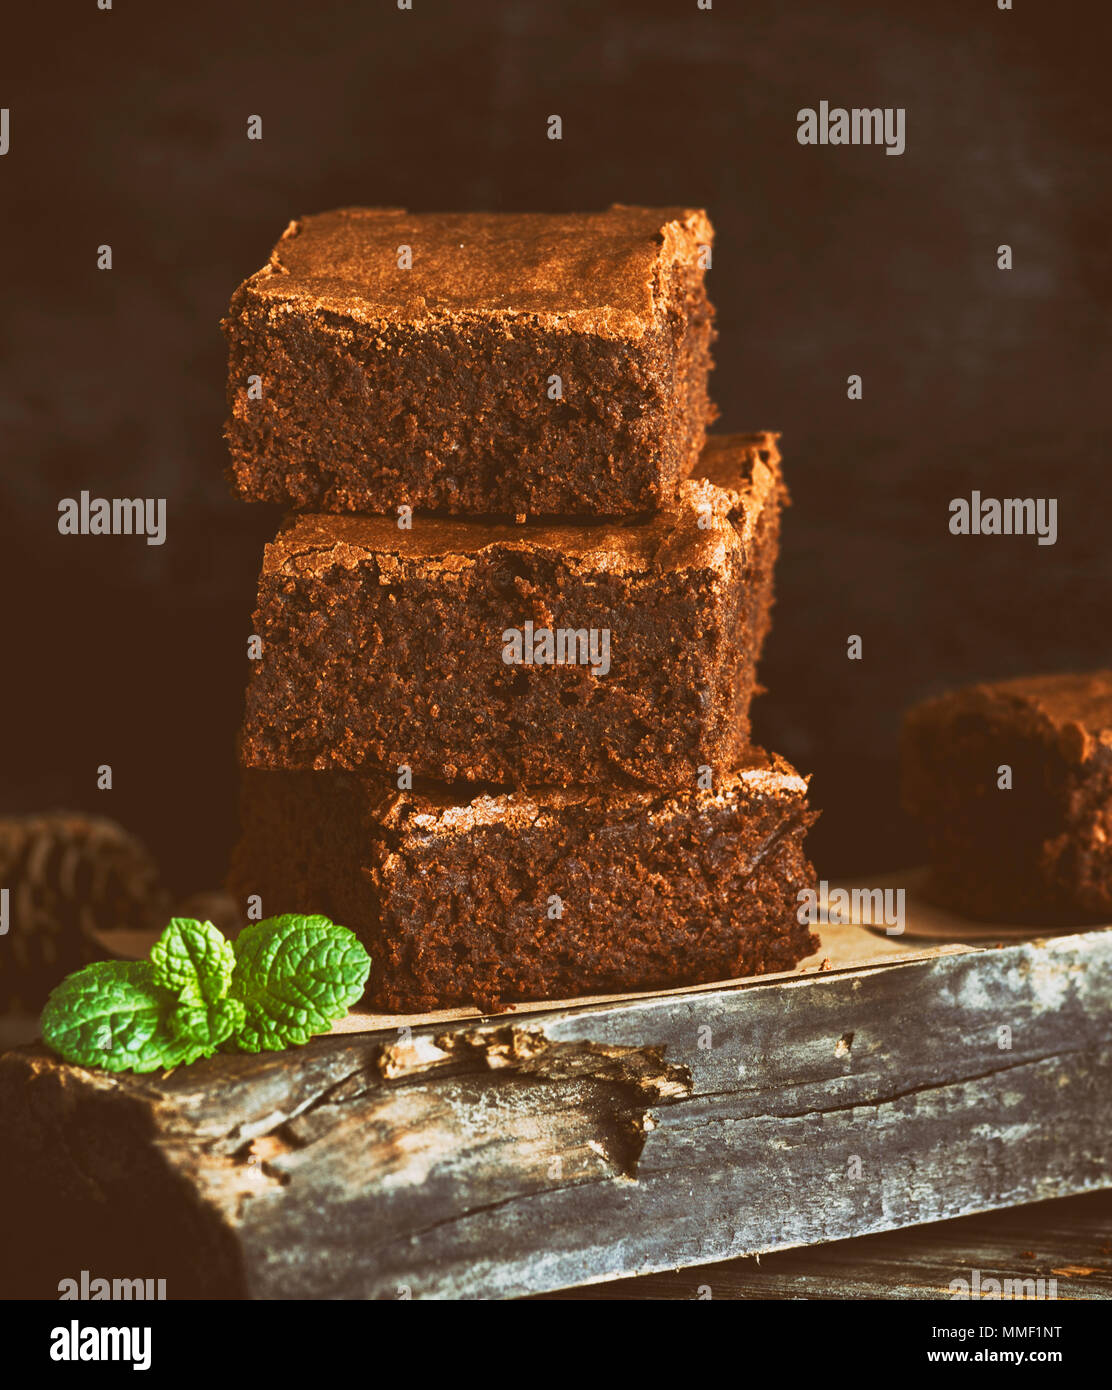 square pieces of chocolate baked brownie pie on a  wooden board, vintage toning - Stock Image